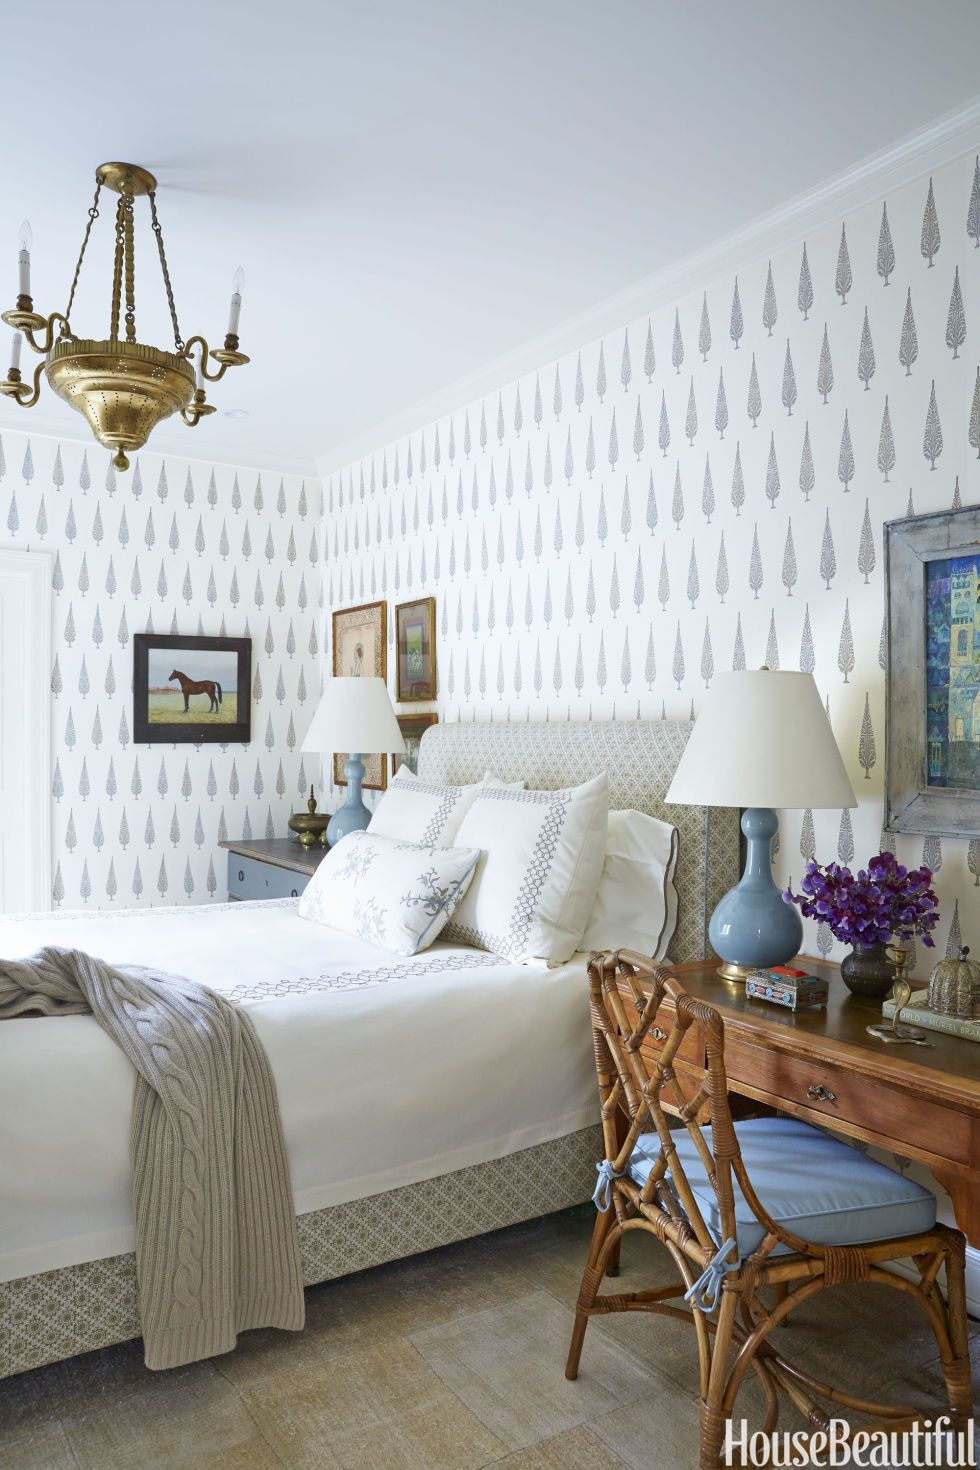 175 Beautiful Designer Bedrooms To Inspire You Decorating Bedroomsethnic Chicbed Roomsguest